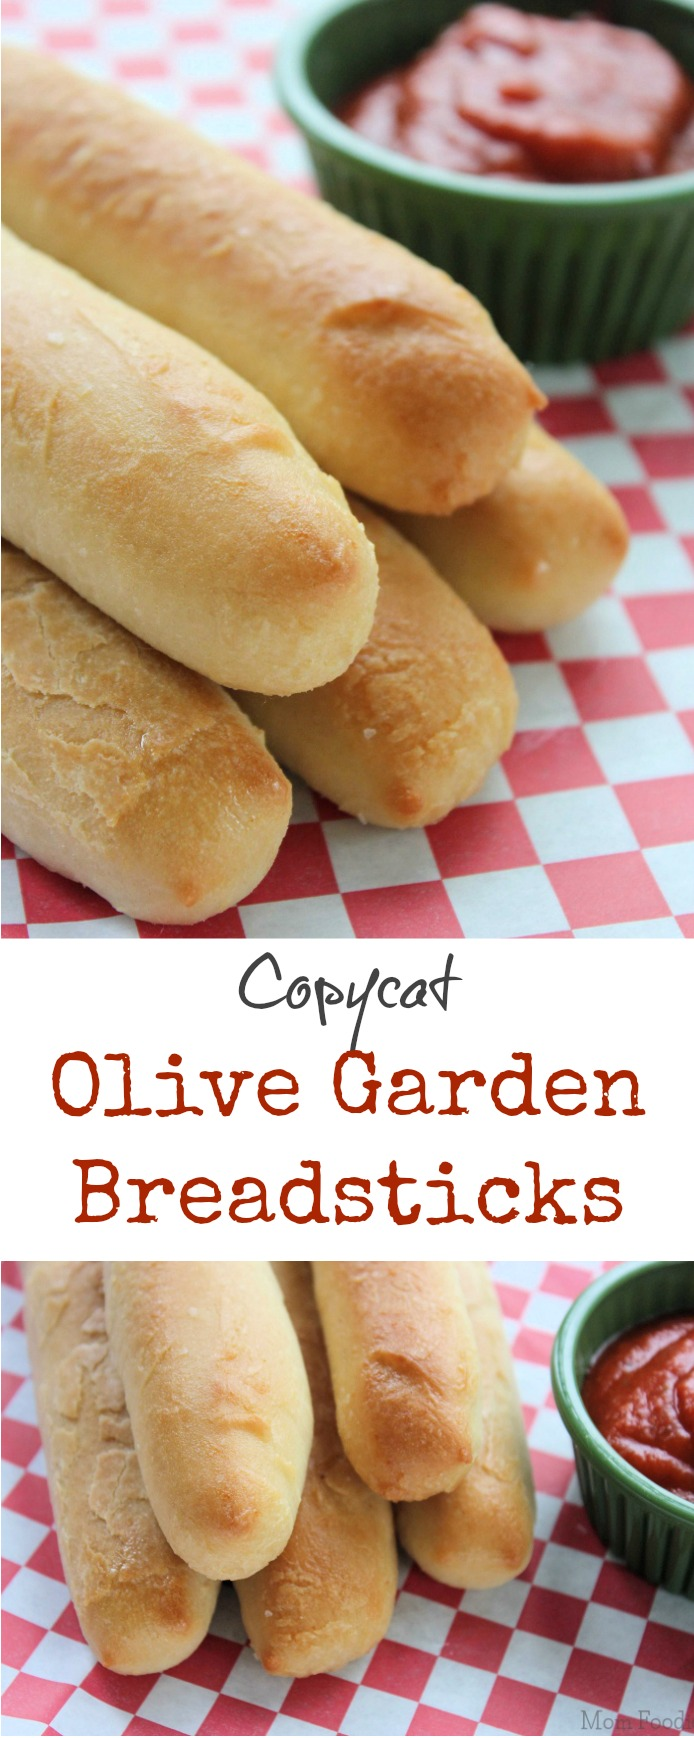 Copycat olive garden breadsticks recipe mom foodie for How many carbs in olive garden breadsticks